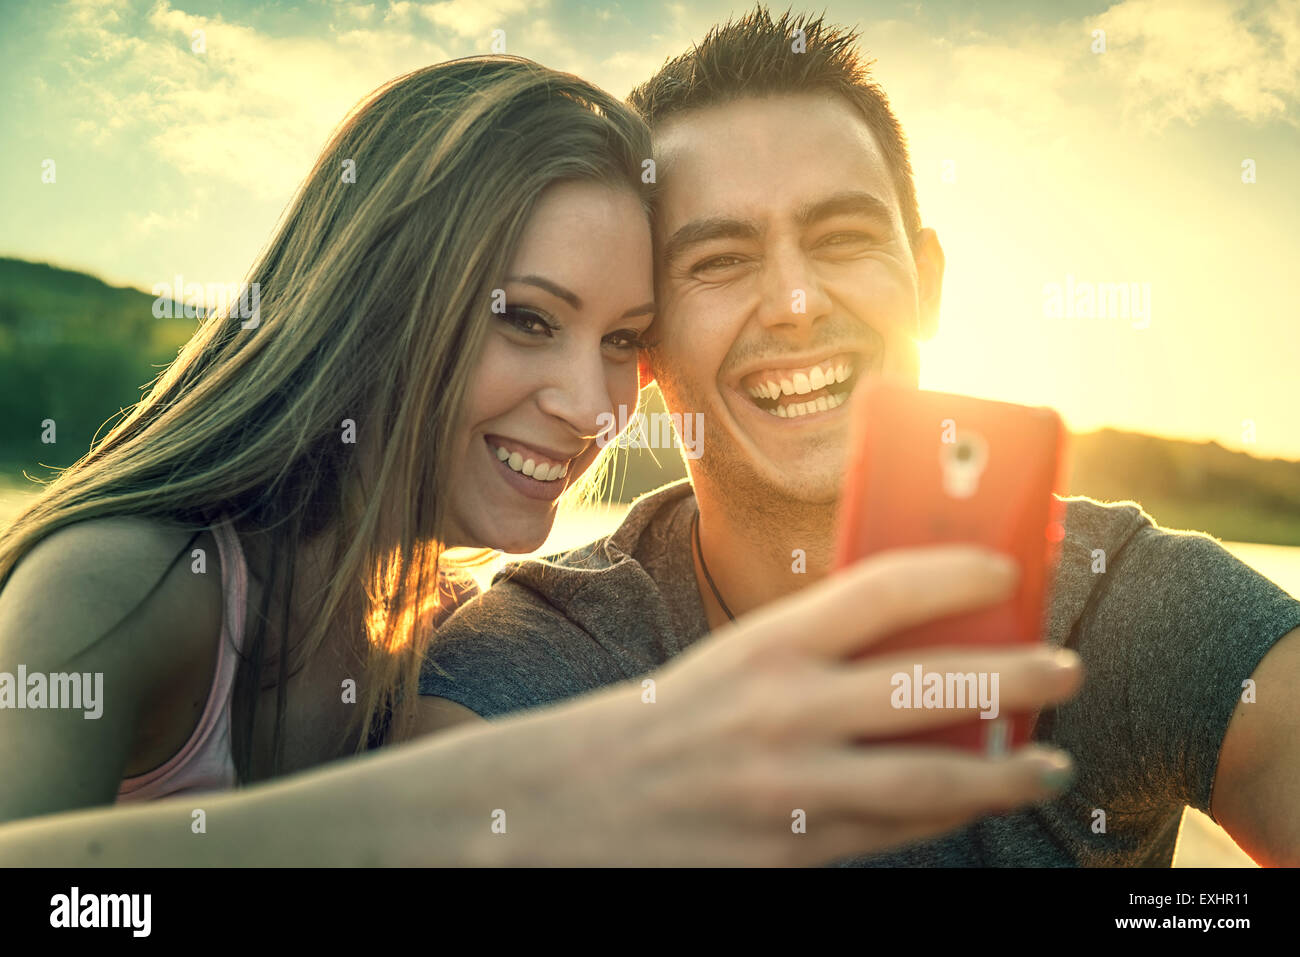 Love Couple smiling, close-up photo selfie - Stock Image